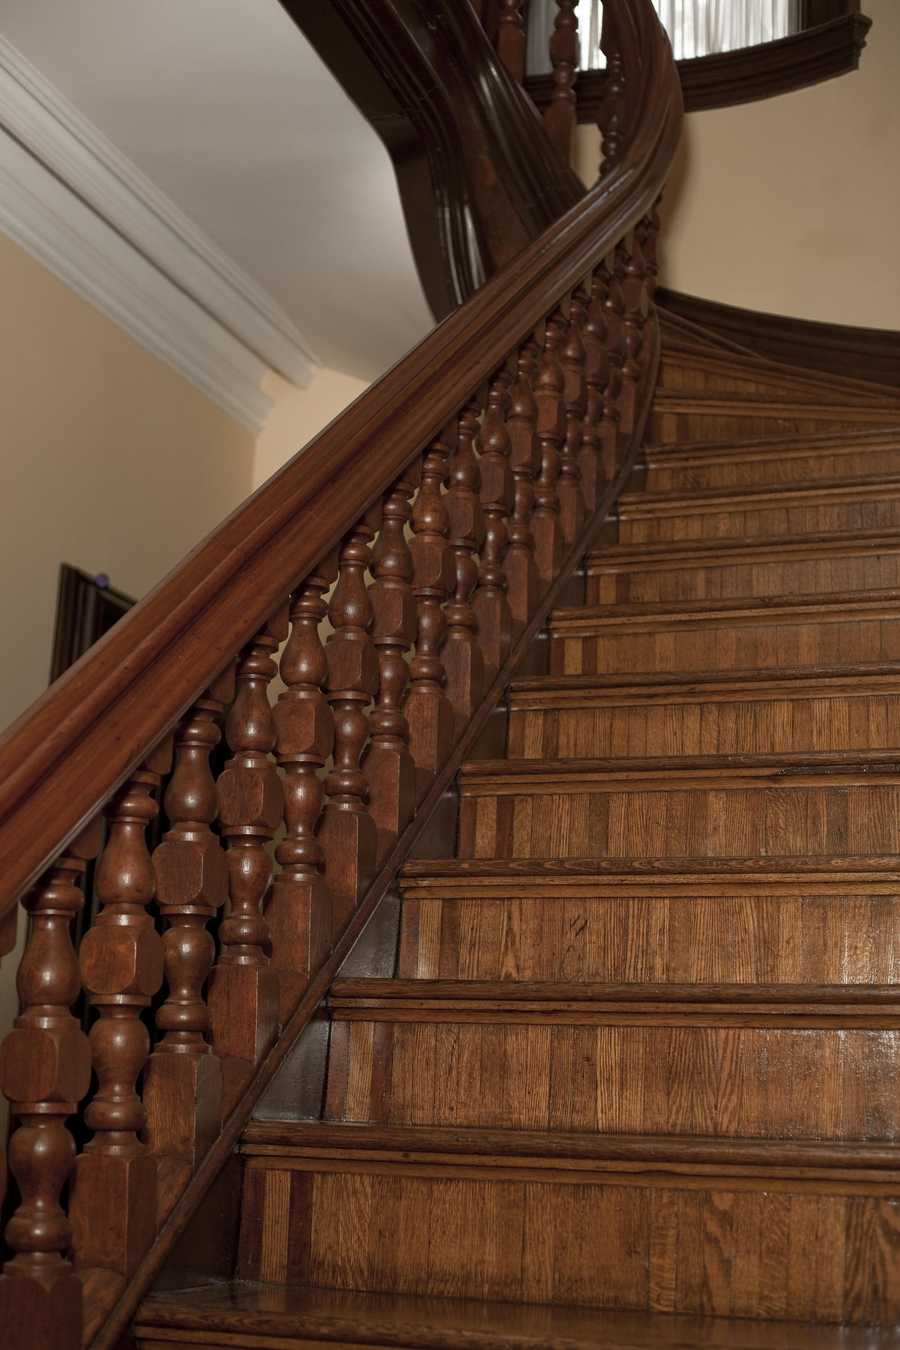 First Floor, Central Staircase